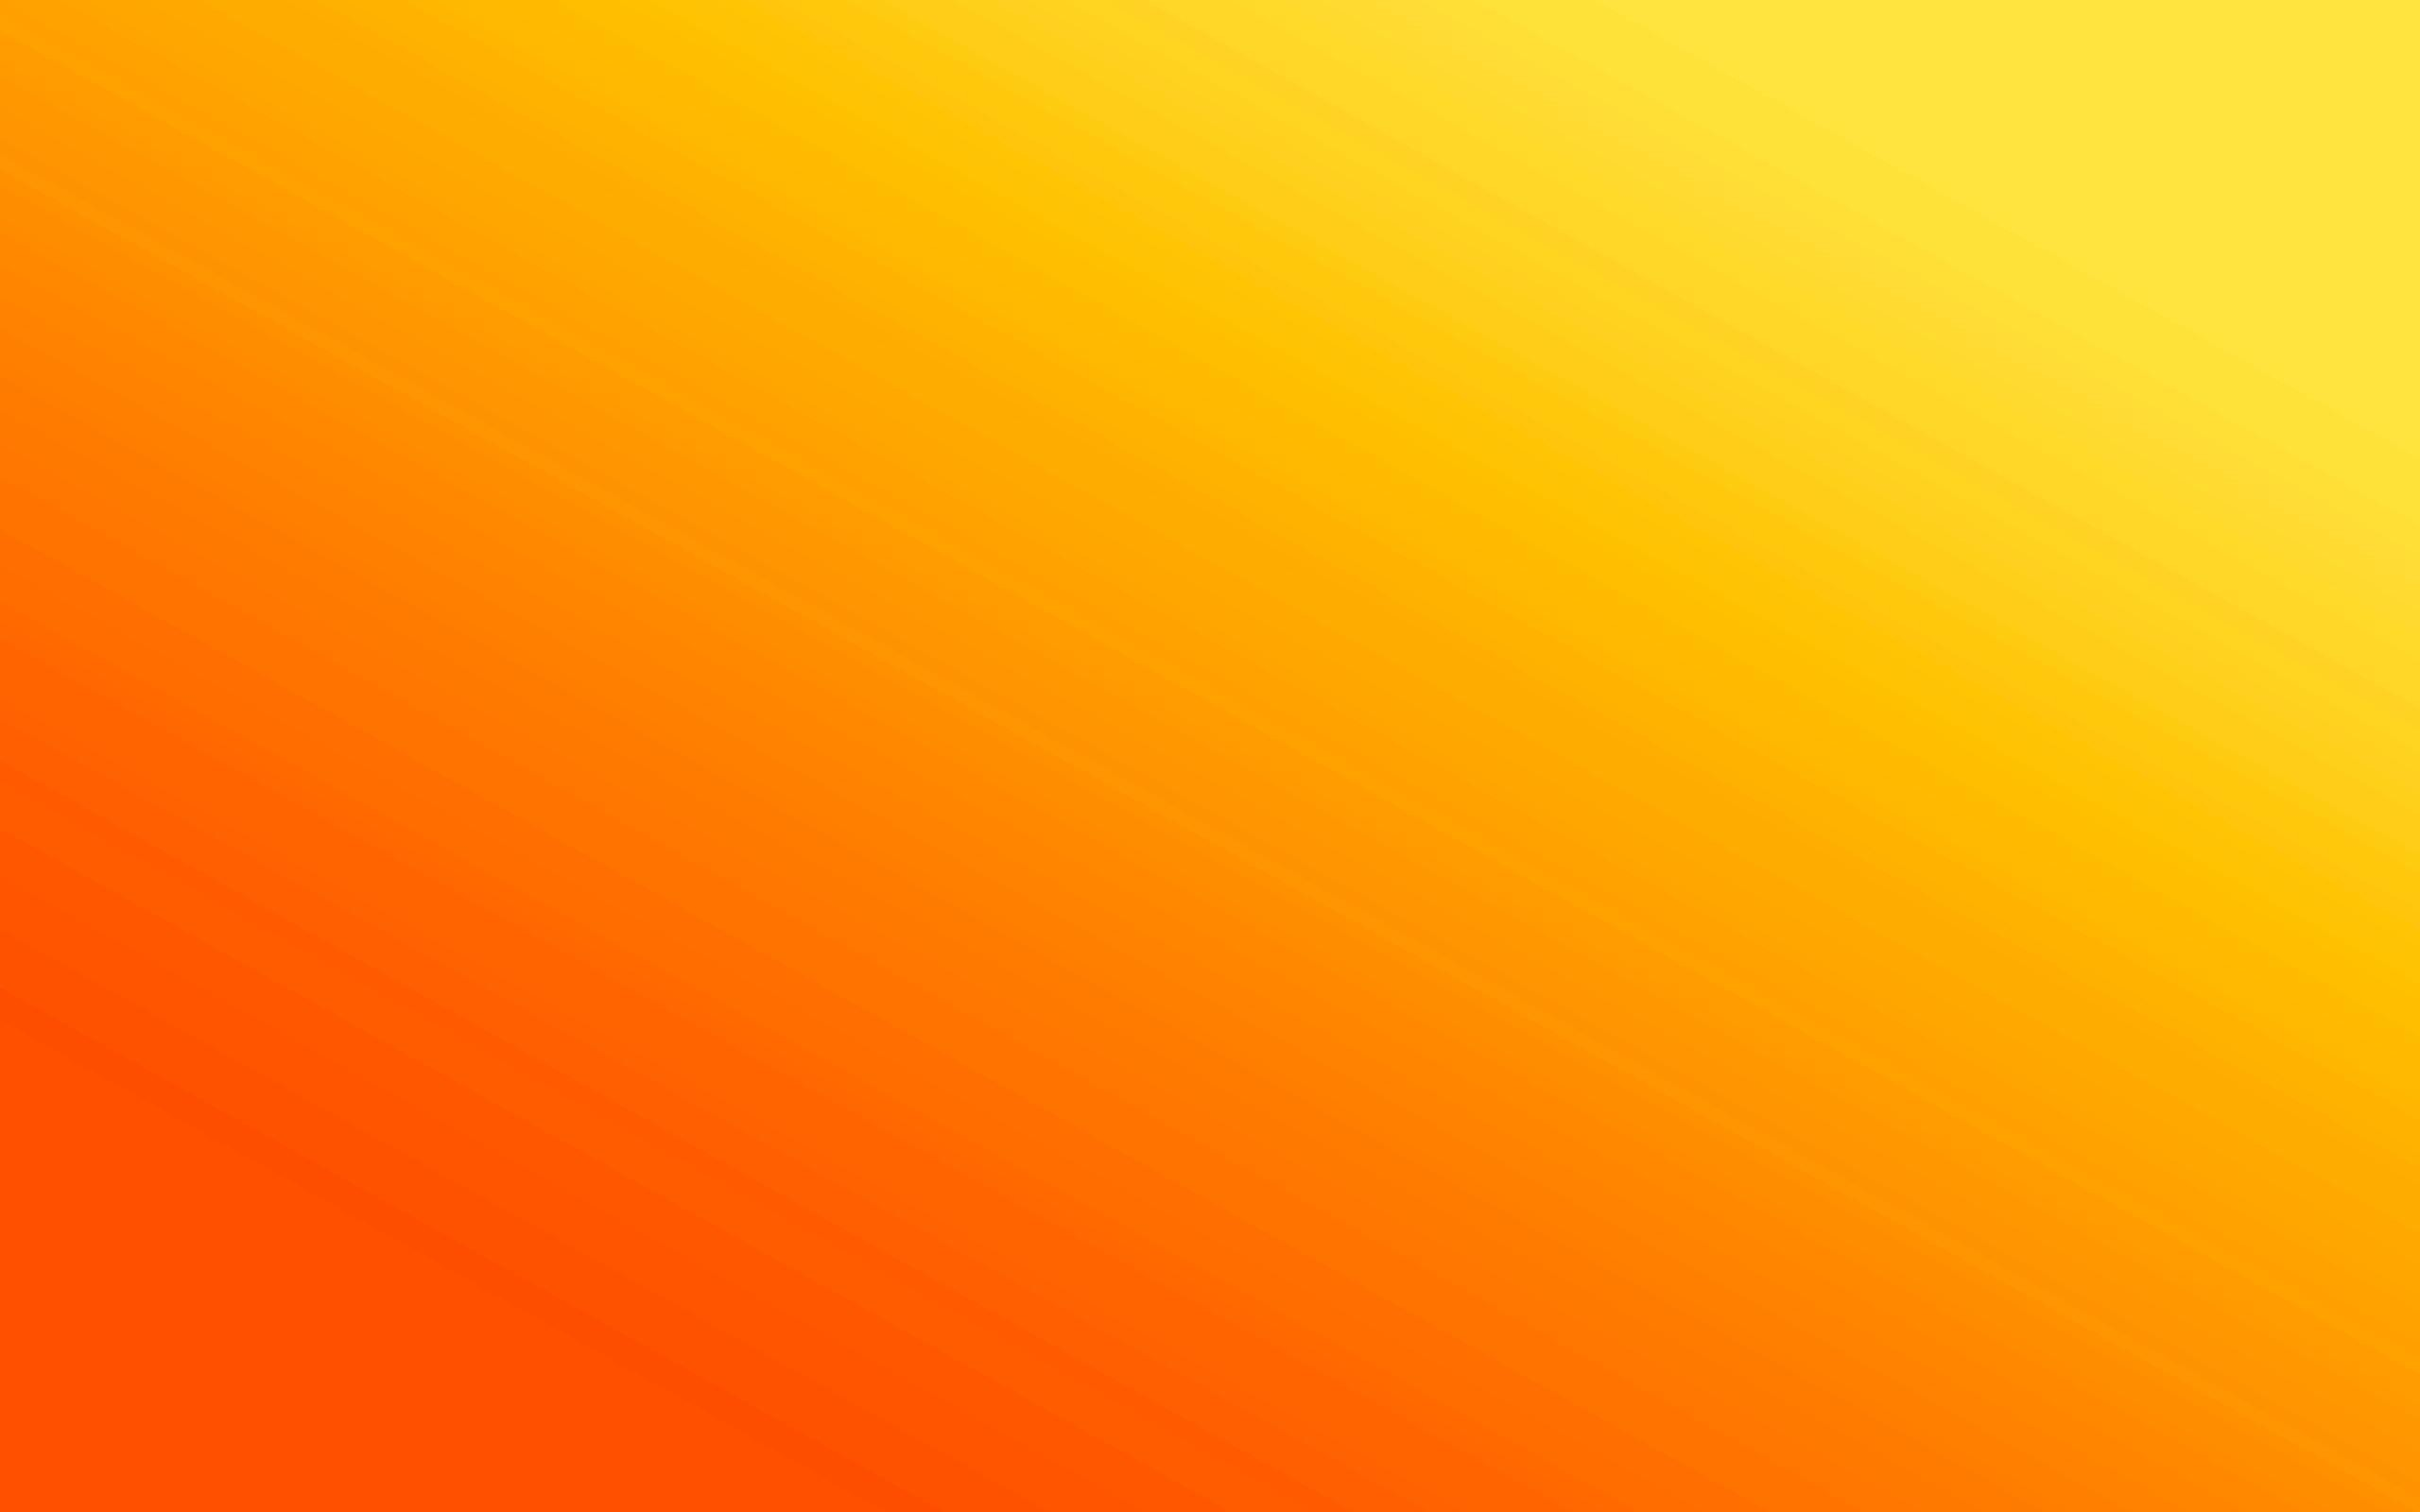 Orange and Yellow Wallpaper (69+ images)